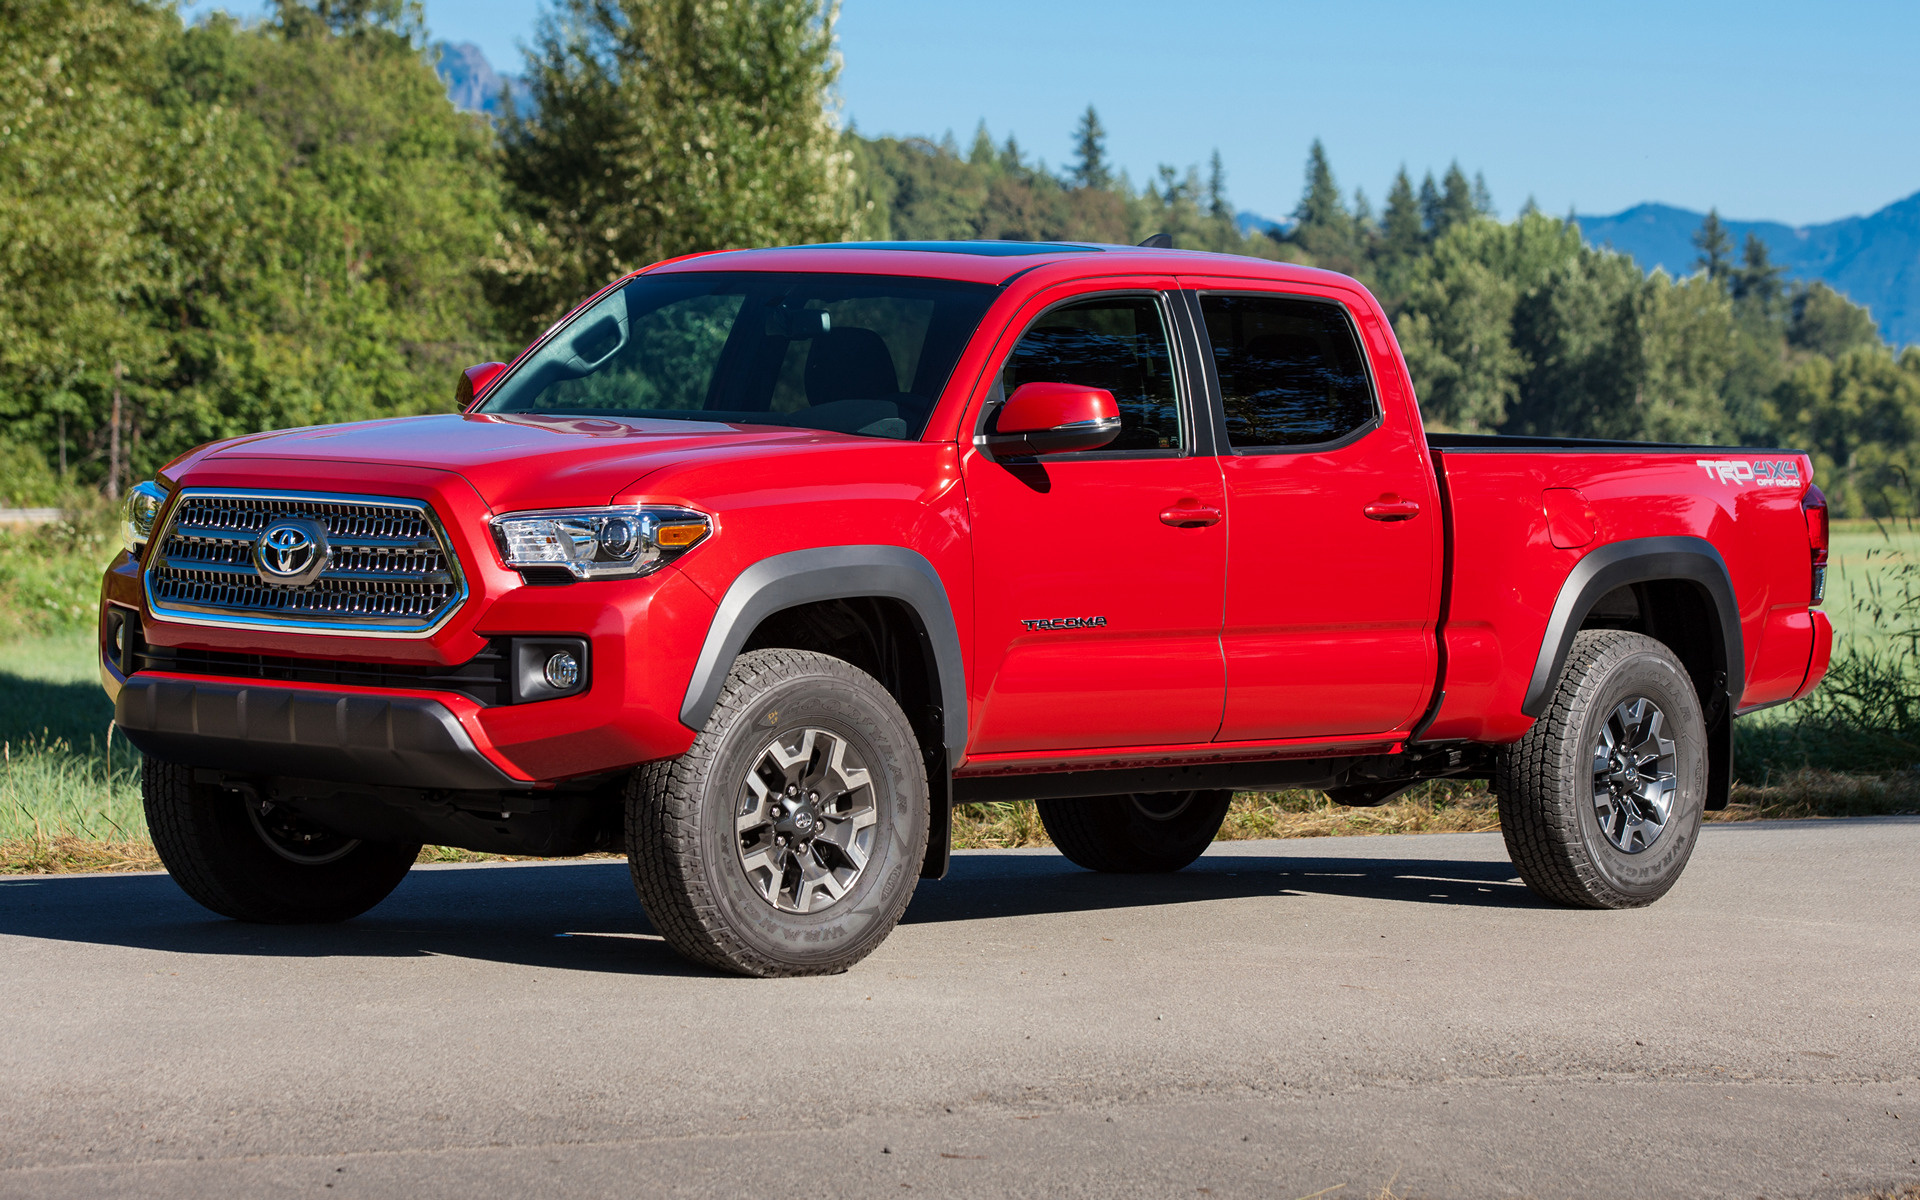 toyota tacoma trd off road double cab 2016 wallpapers and hd images car pixel. Black Bedroom Furniture Sets. Home Design Ideas